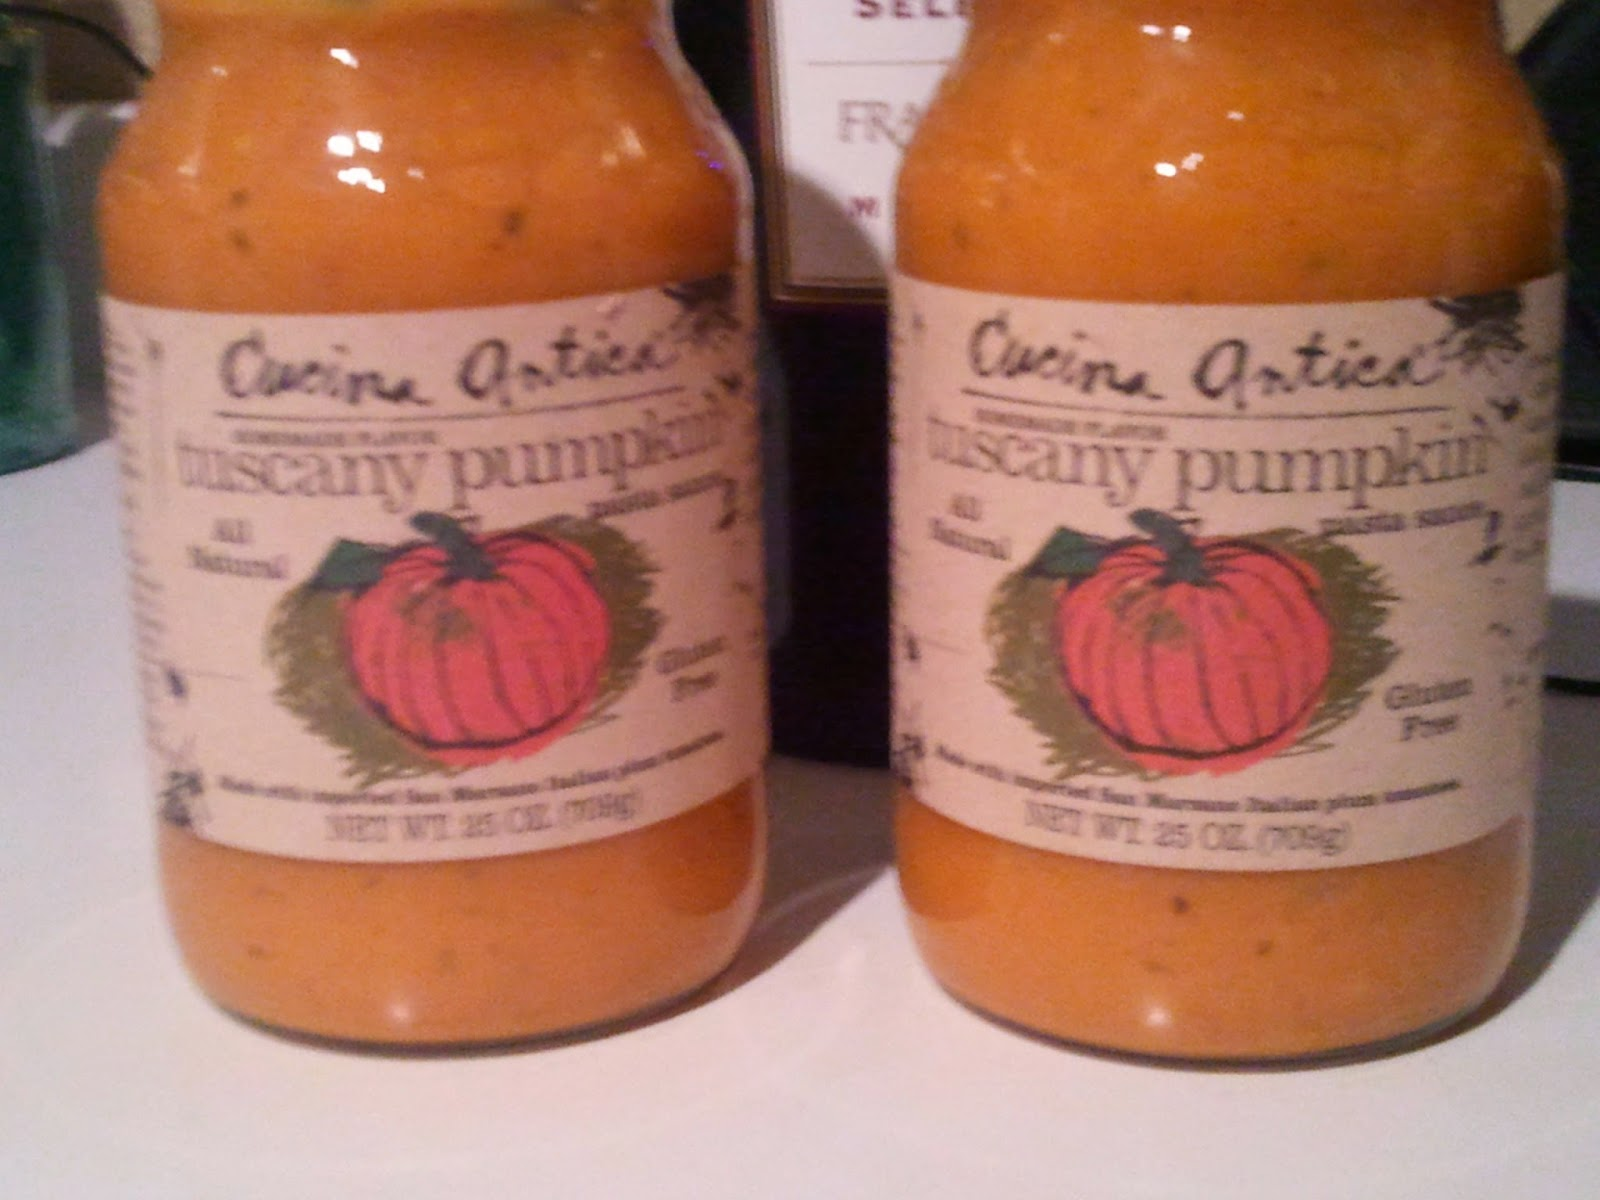 Cucina Antica Sauce Perfect Sauce For The Holidays Cucina Antica Pumpkin Sauce